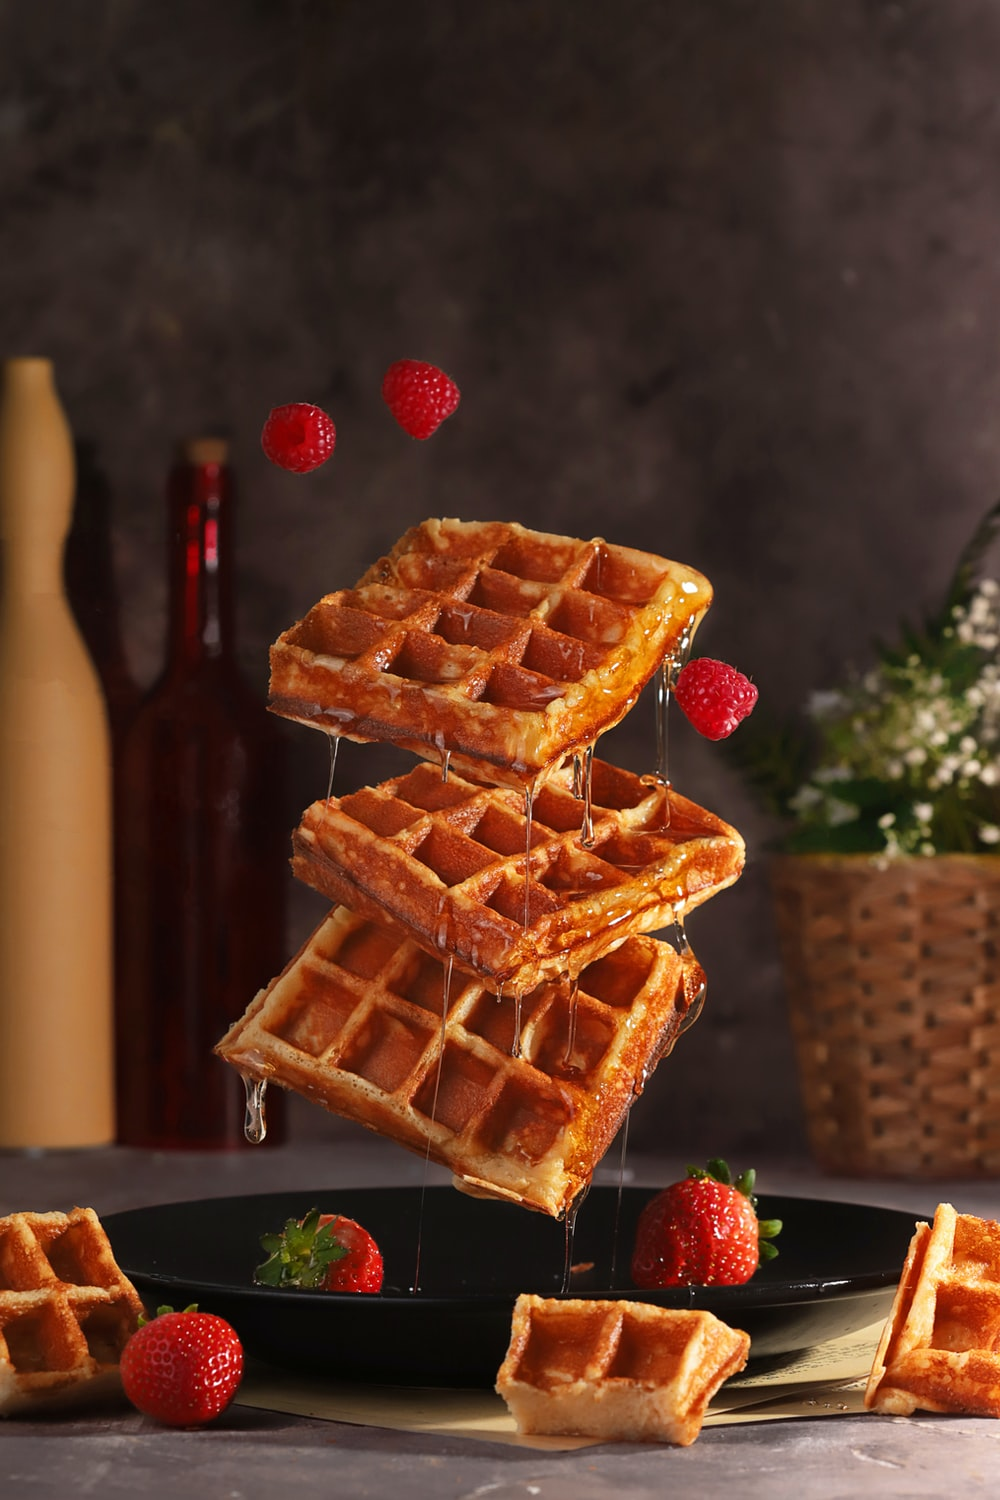 brown and red waffle on brown wooden table